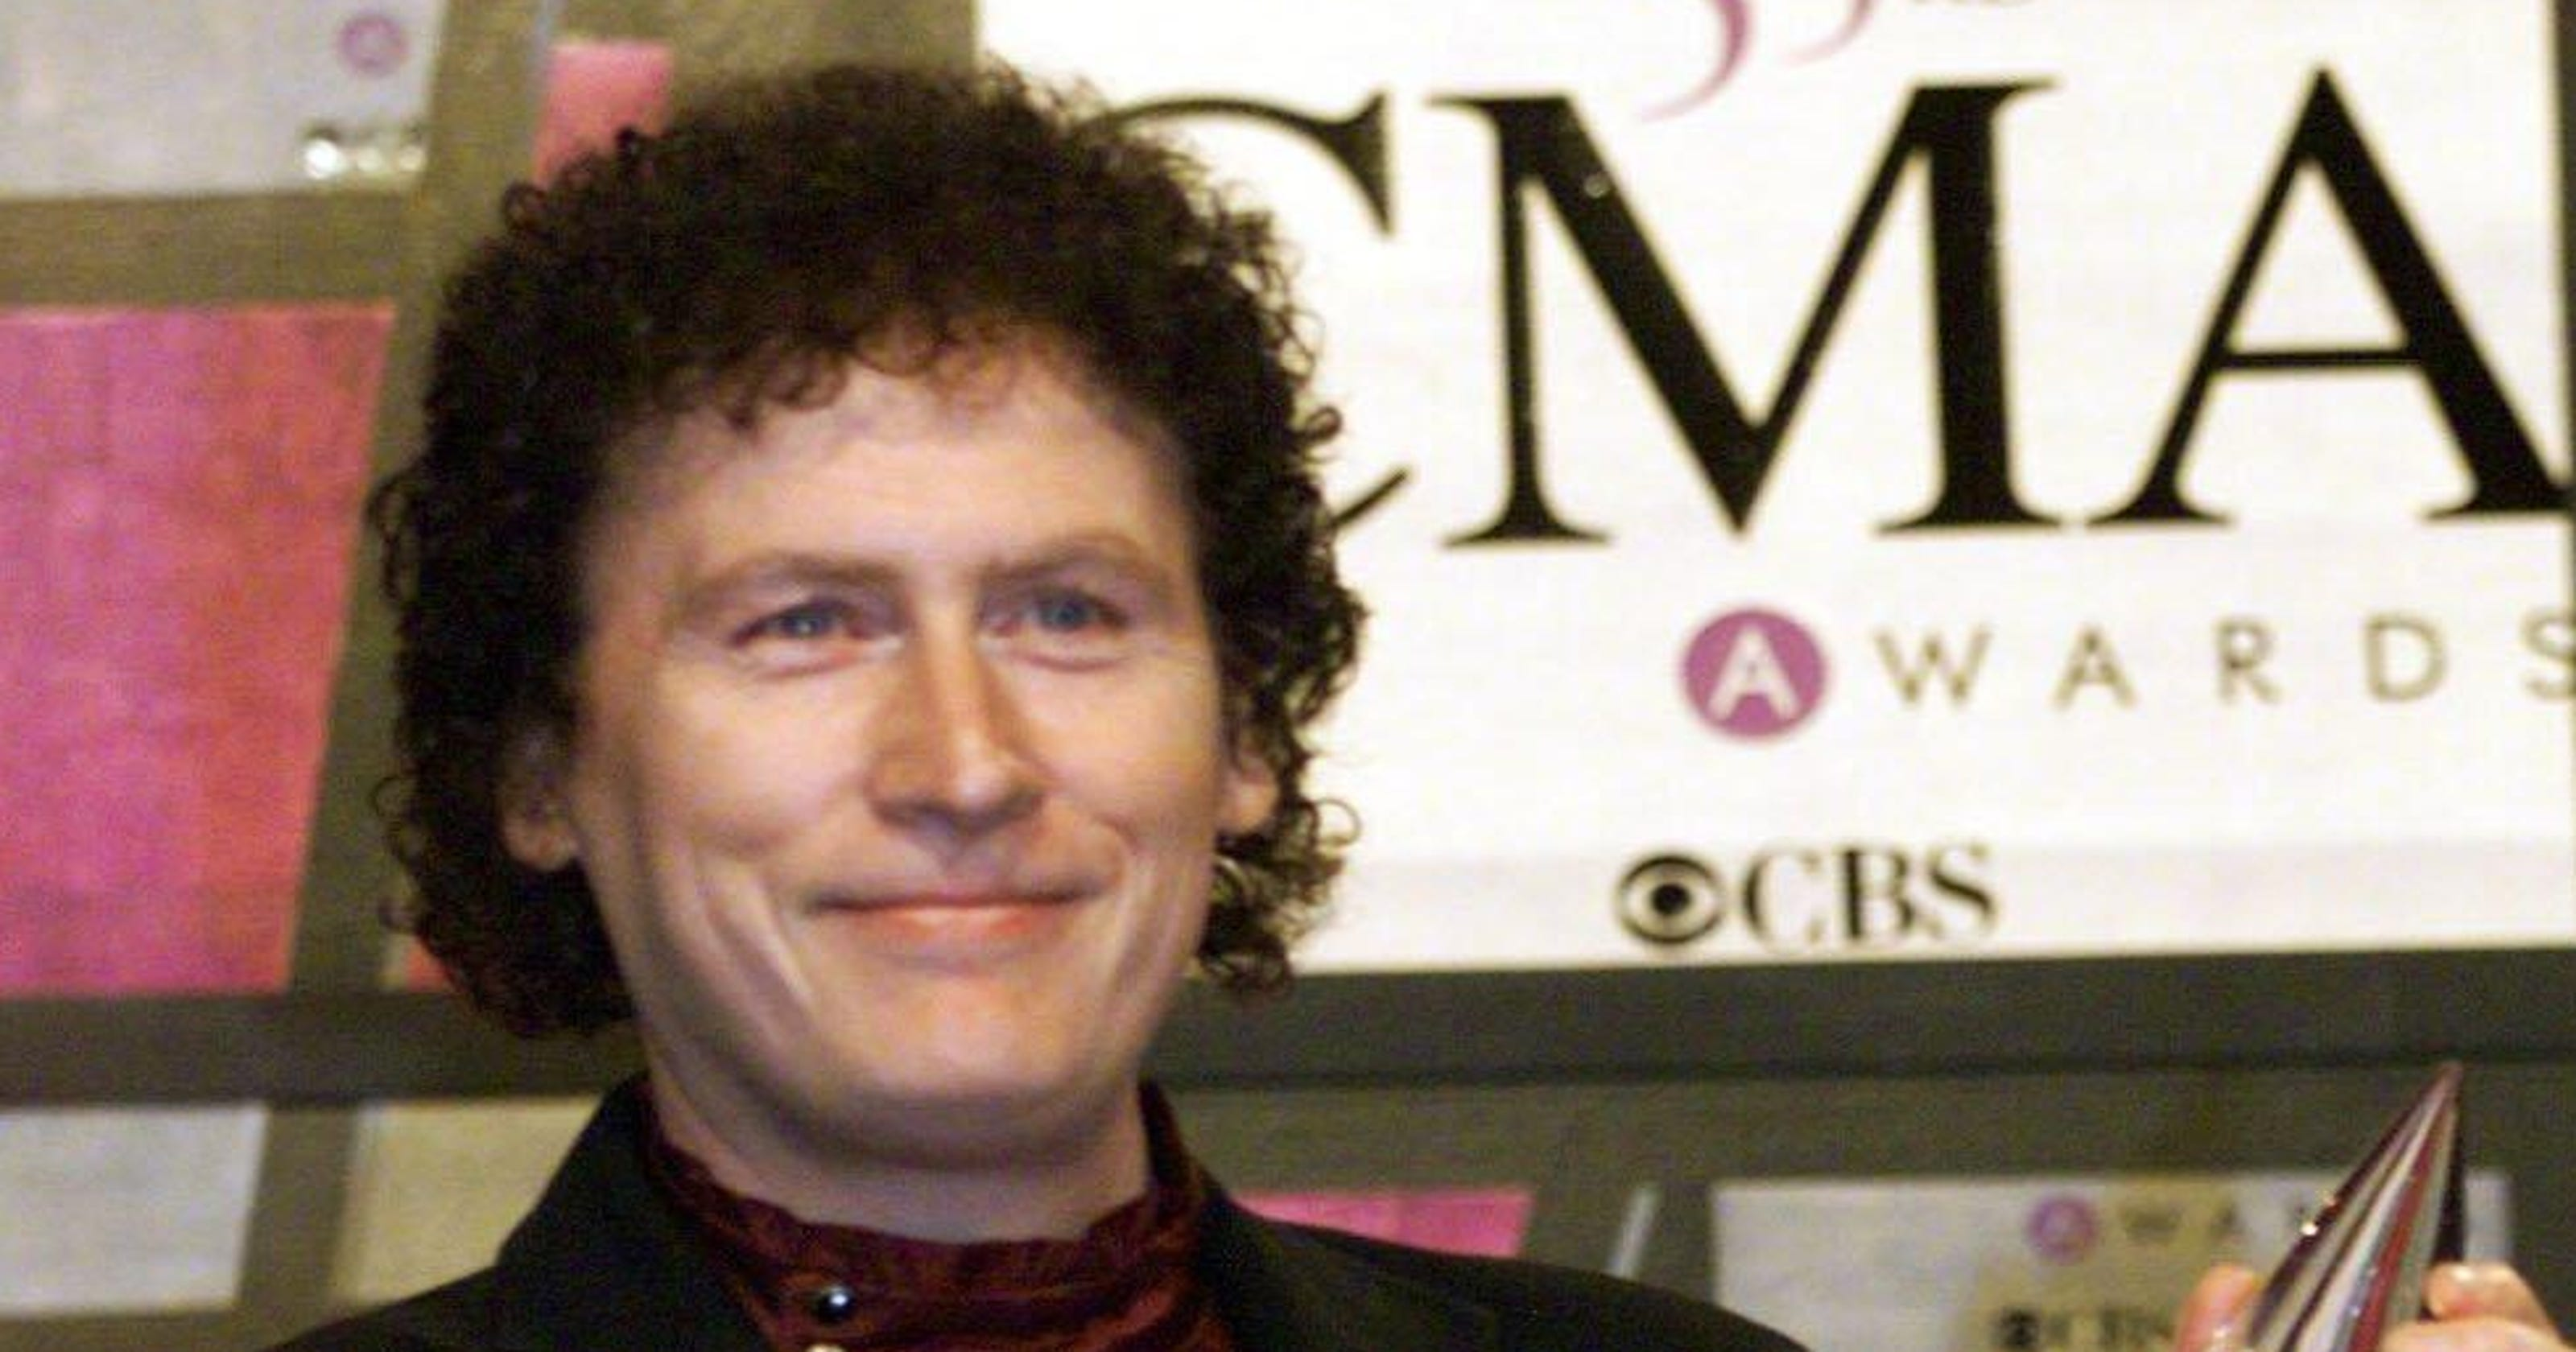 Randy Scruggs, acclaimed guitarist and producer, dead at 64